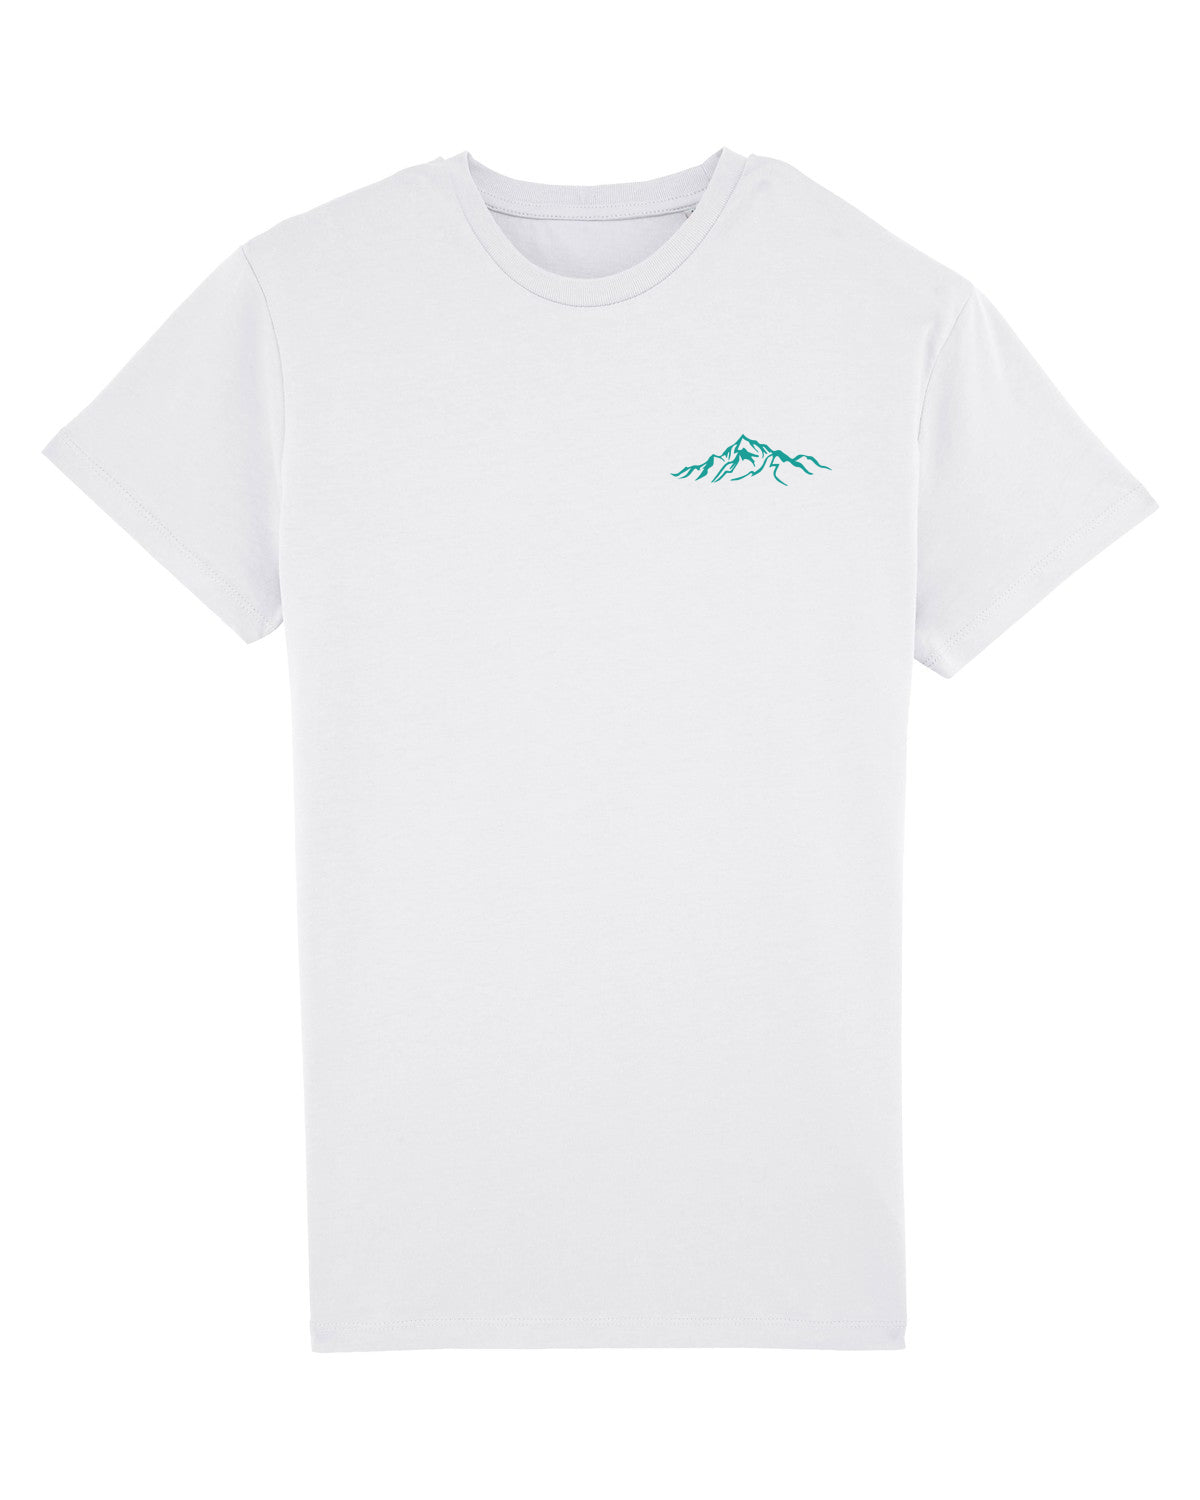 Men's Organic Cotton Clothing Tee